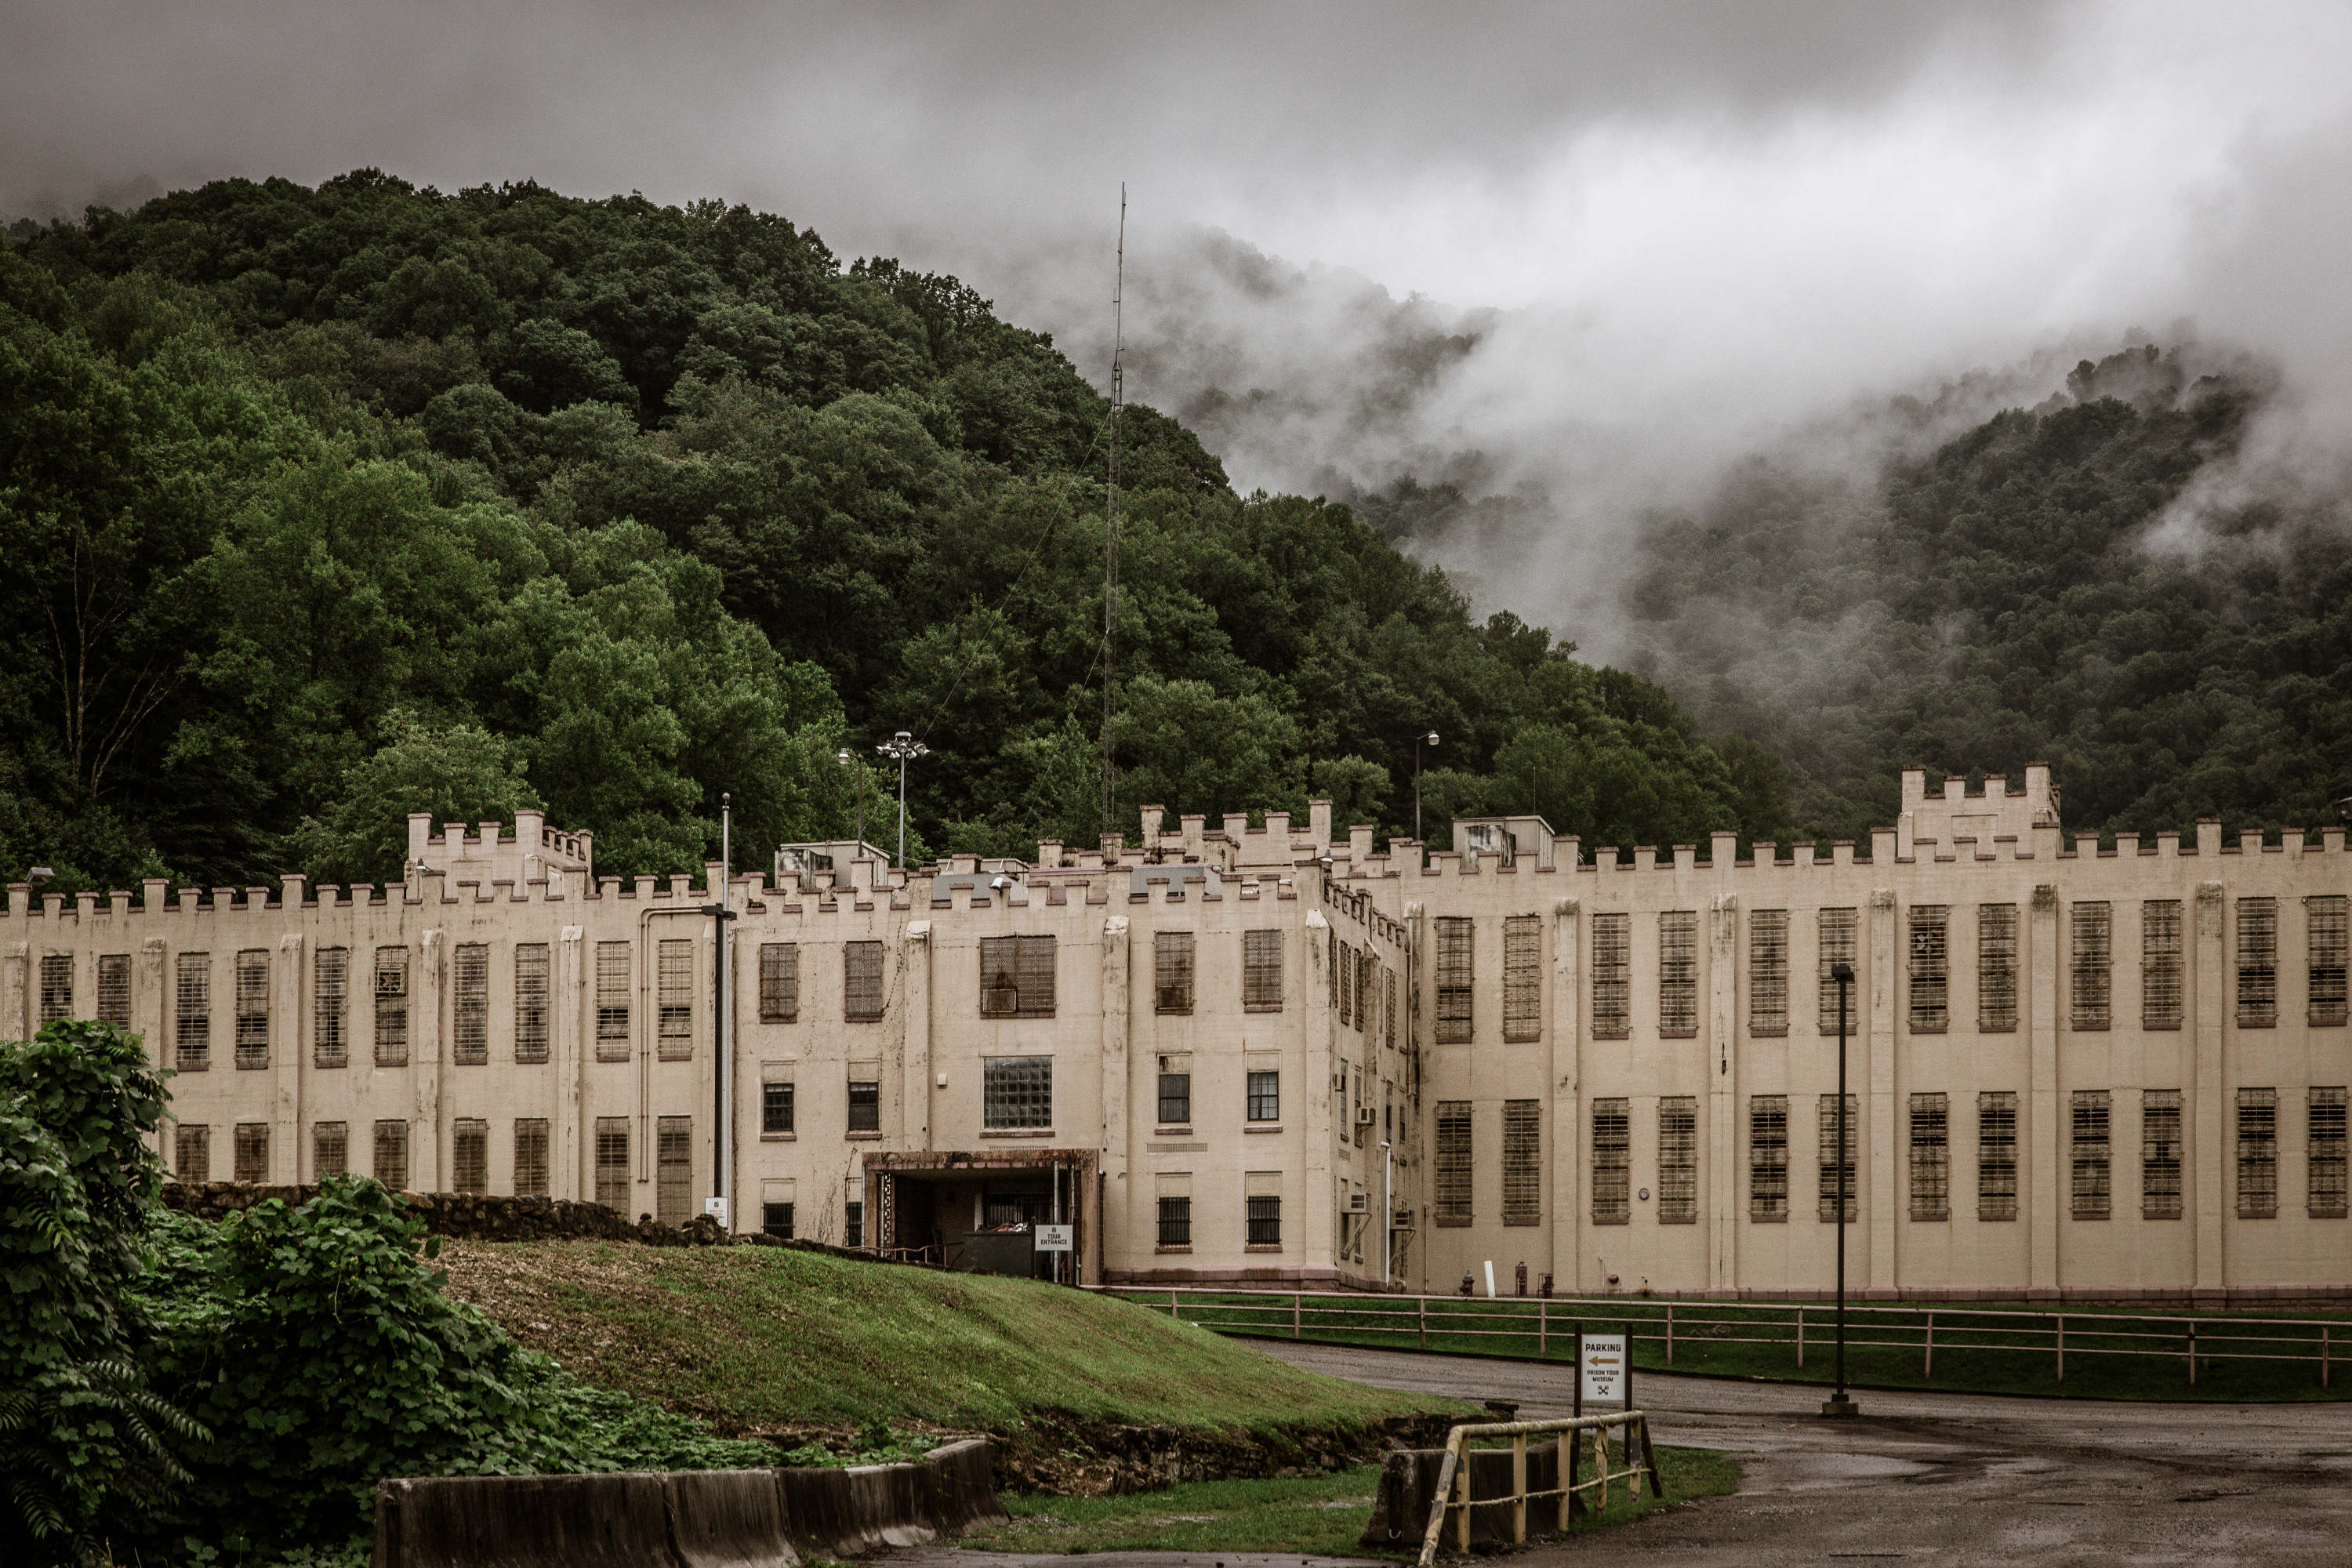 You can now tour the infamous Brushy Mountain Penitentiary